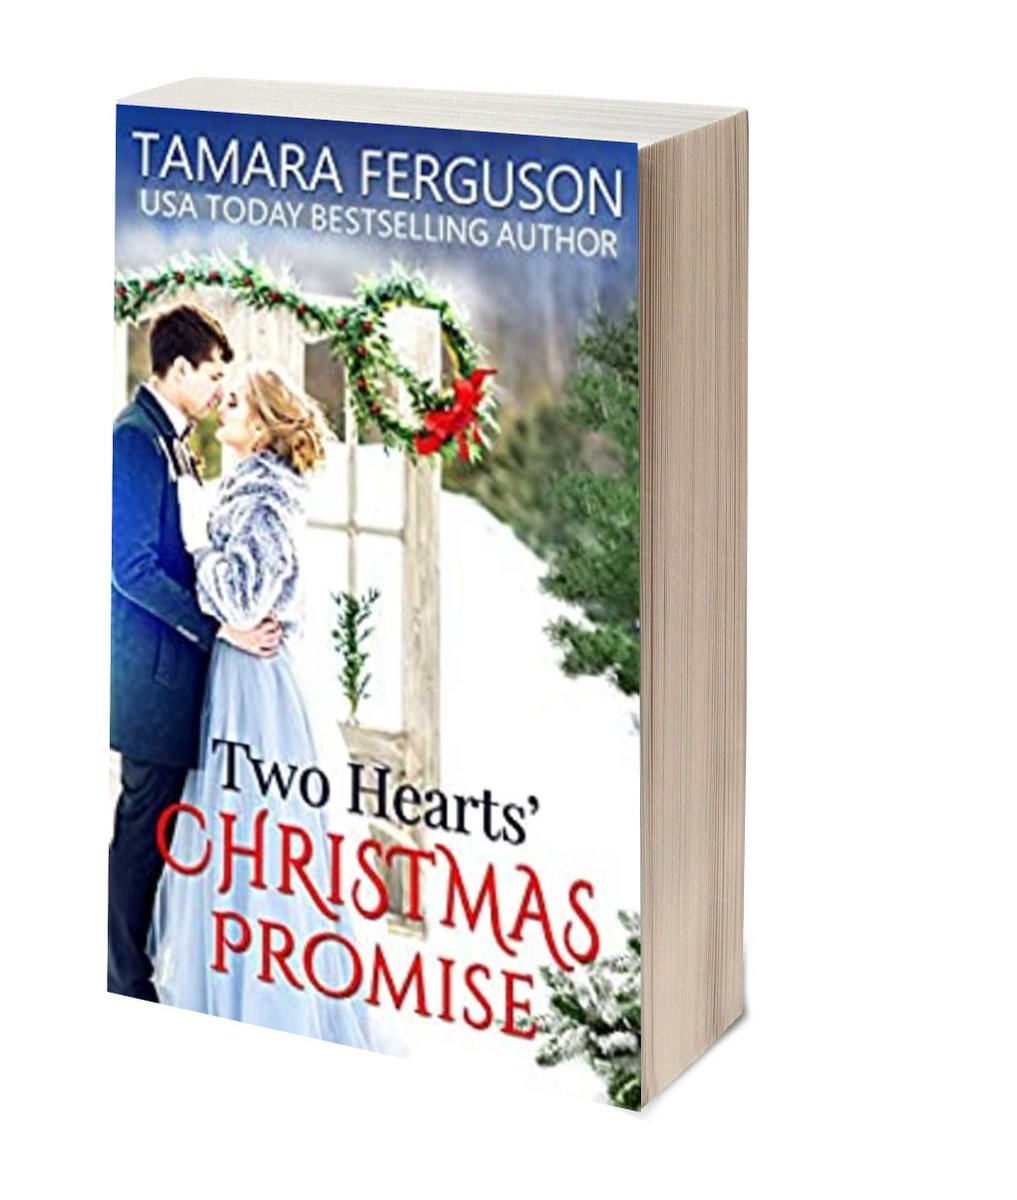 """Can he convince her that beauty is only skin deep? ★TWO HEARTS' CHRISTMAS PROMISE★ 🦉https://t.co/BRKFZFxLfY   """"@Tammysdragonfly https://t.co/TmdCVyL3Hf  #ASMSG #favorite ✎via Pizzazz Book Promotions https://t.co/OfIQDxahgO https://t.co/hdJy0Rn4fA"""